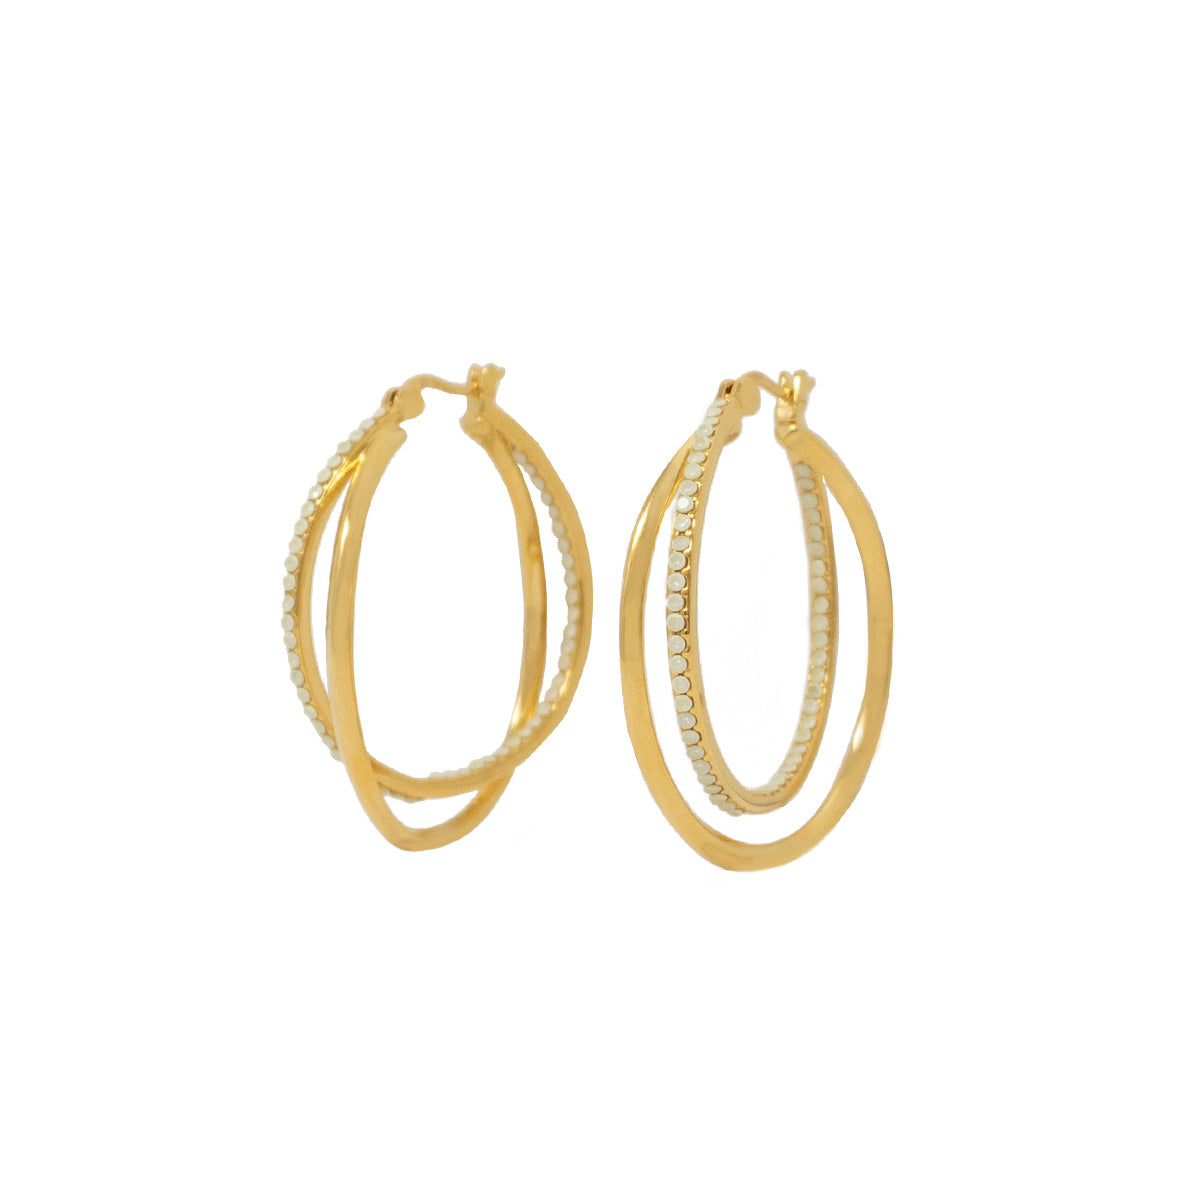 Cira Intertwined Pavé Hoop Earrings - White Opal